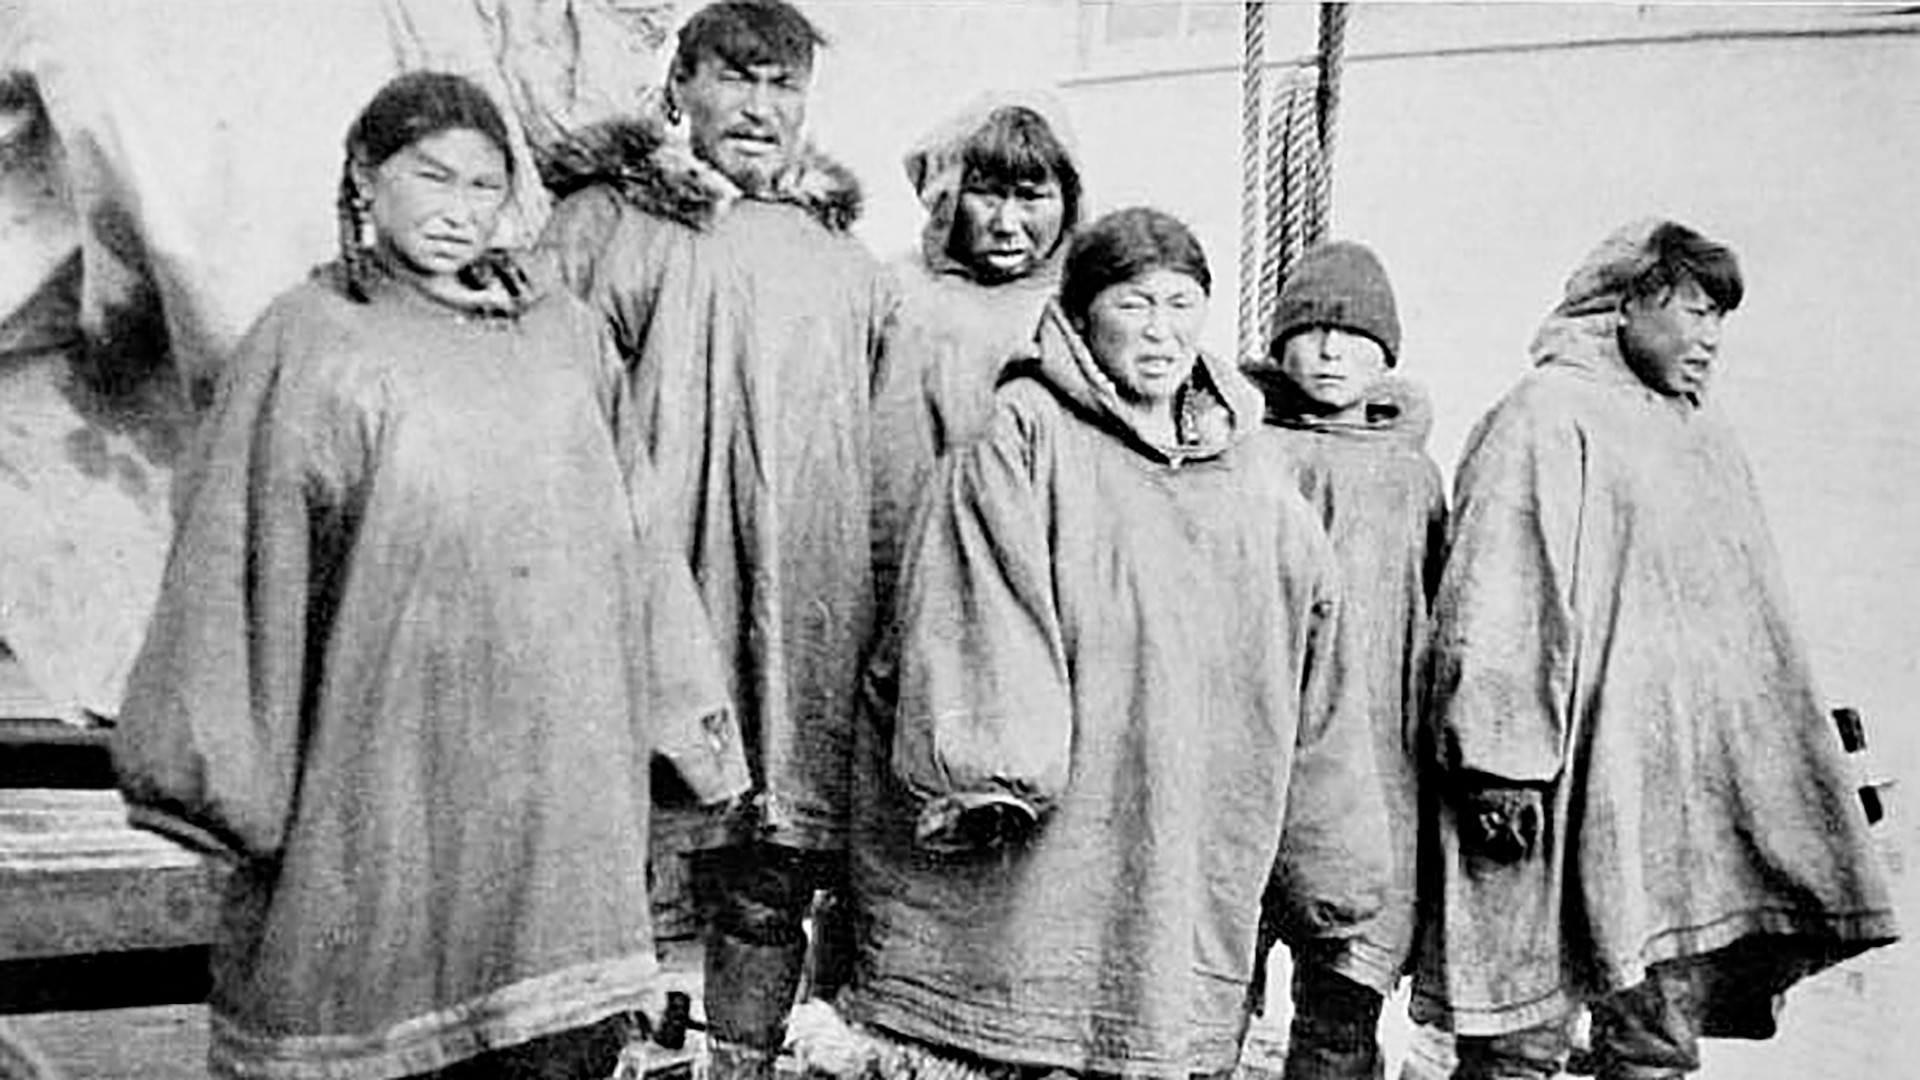 Chukchi residents of a remote Uelen village (1913). By that time the Chukchi reached peace with Russia.